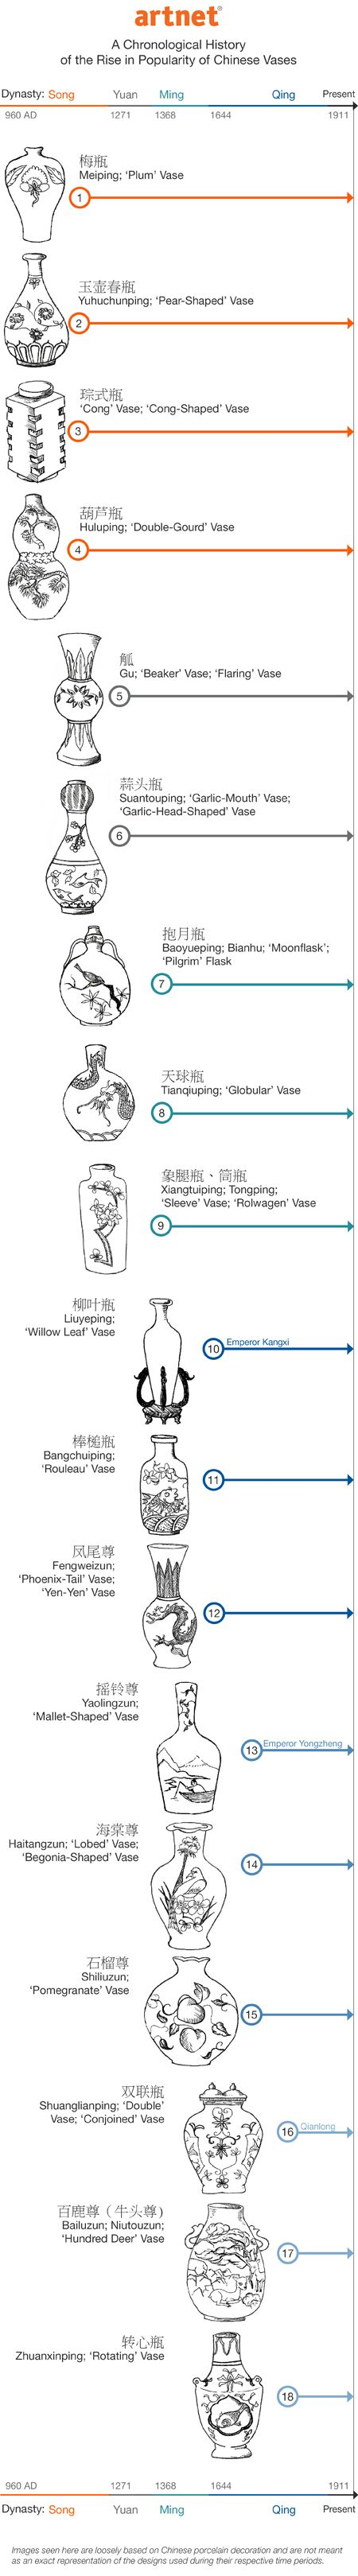 Chinese vase infographic a beginners guide to chinese porcelain chinese vase infographic a beginners guide to chinese porcelain vase shapes helen bu tuesday reviewsmspy